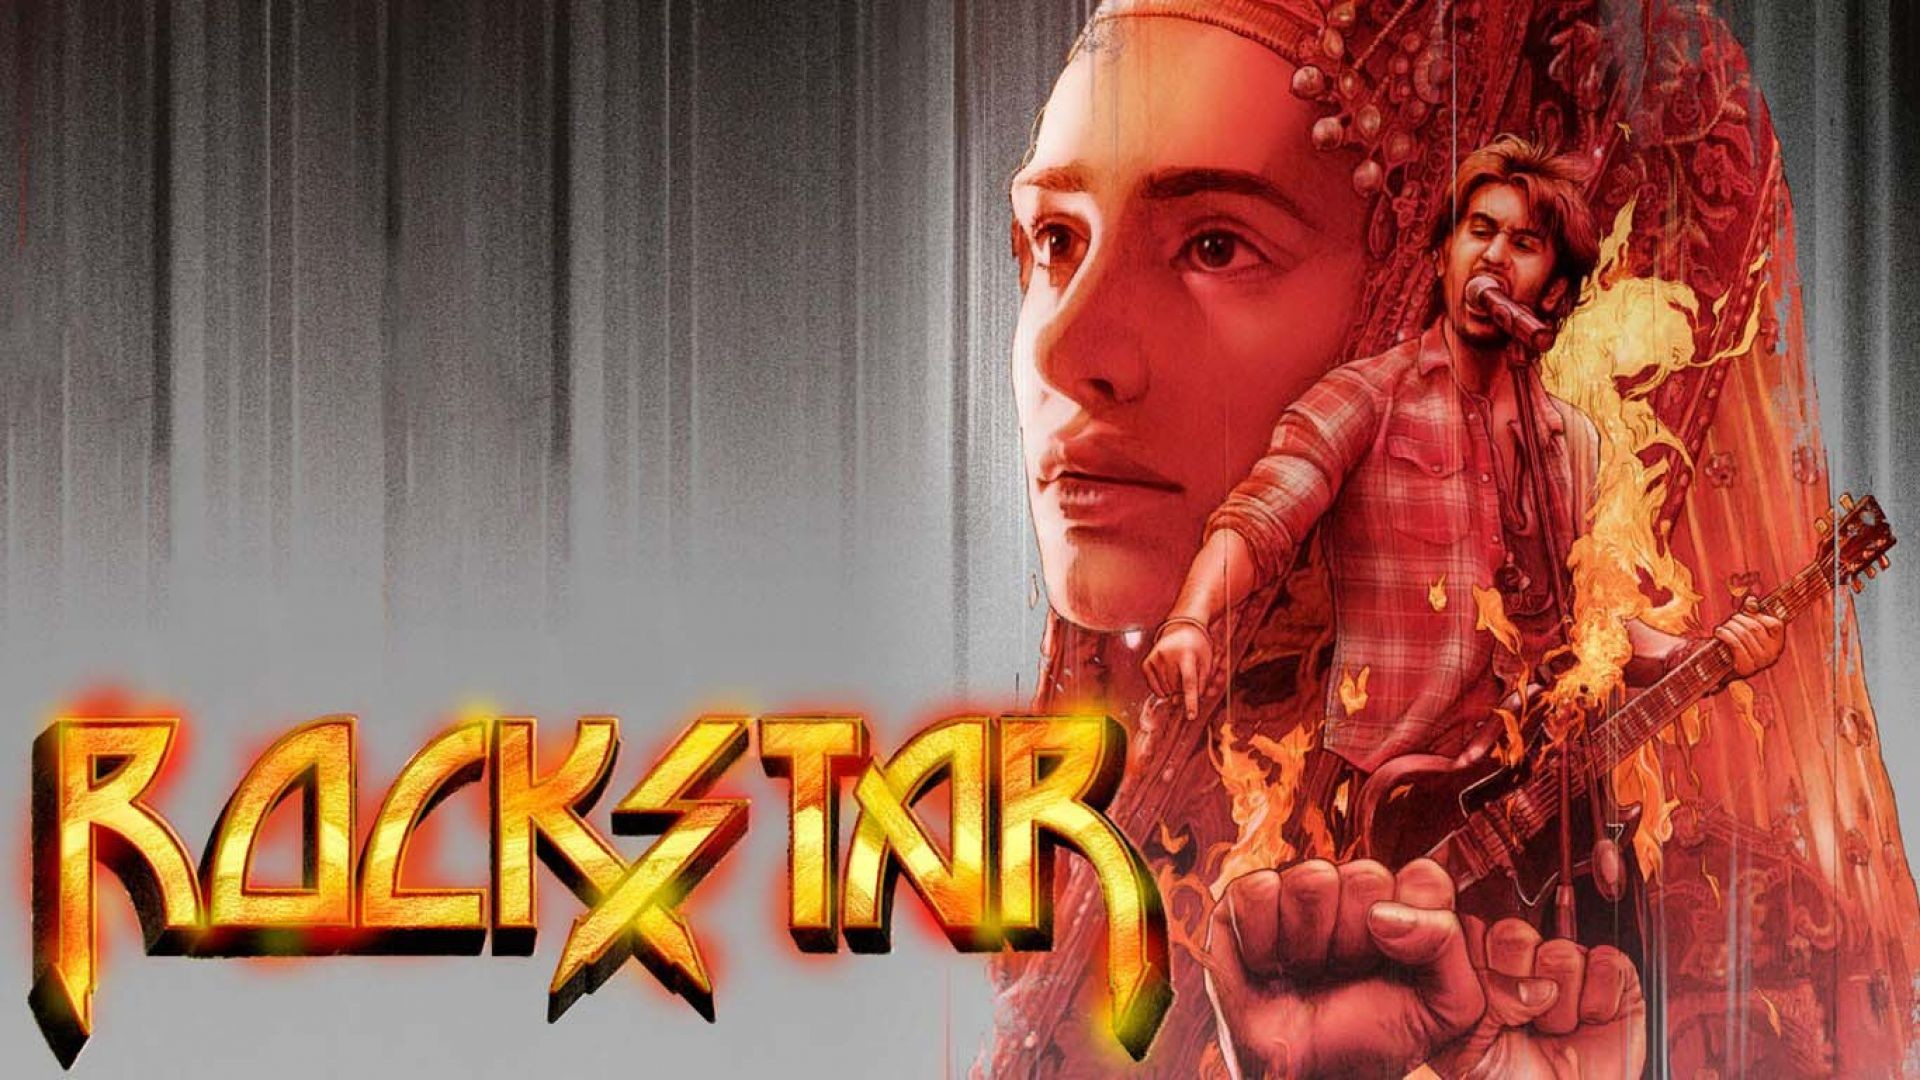 1920x1080 Rock Star Movie poster | HD Bollywood Movies Wallpaper Free Download ...